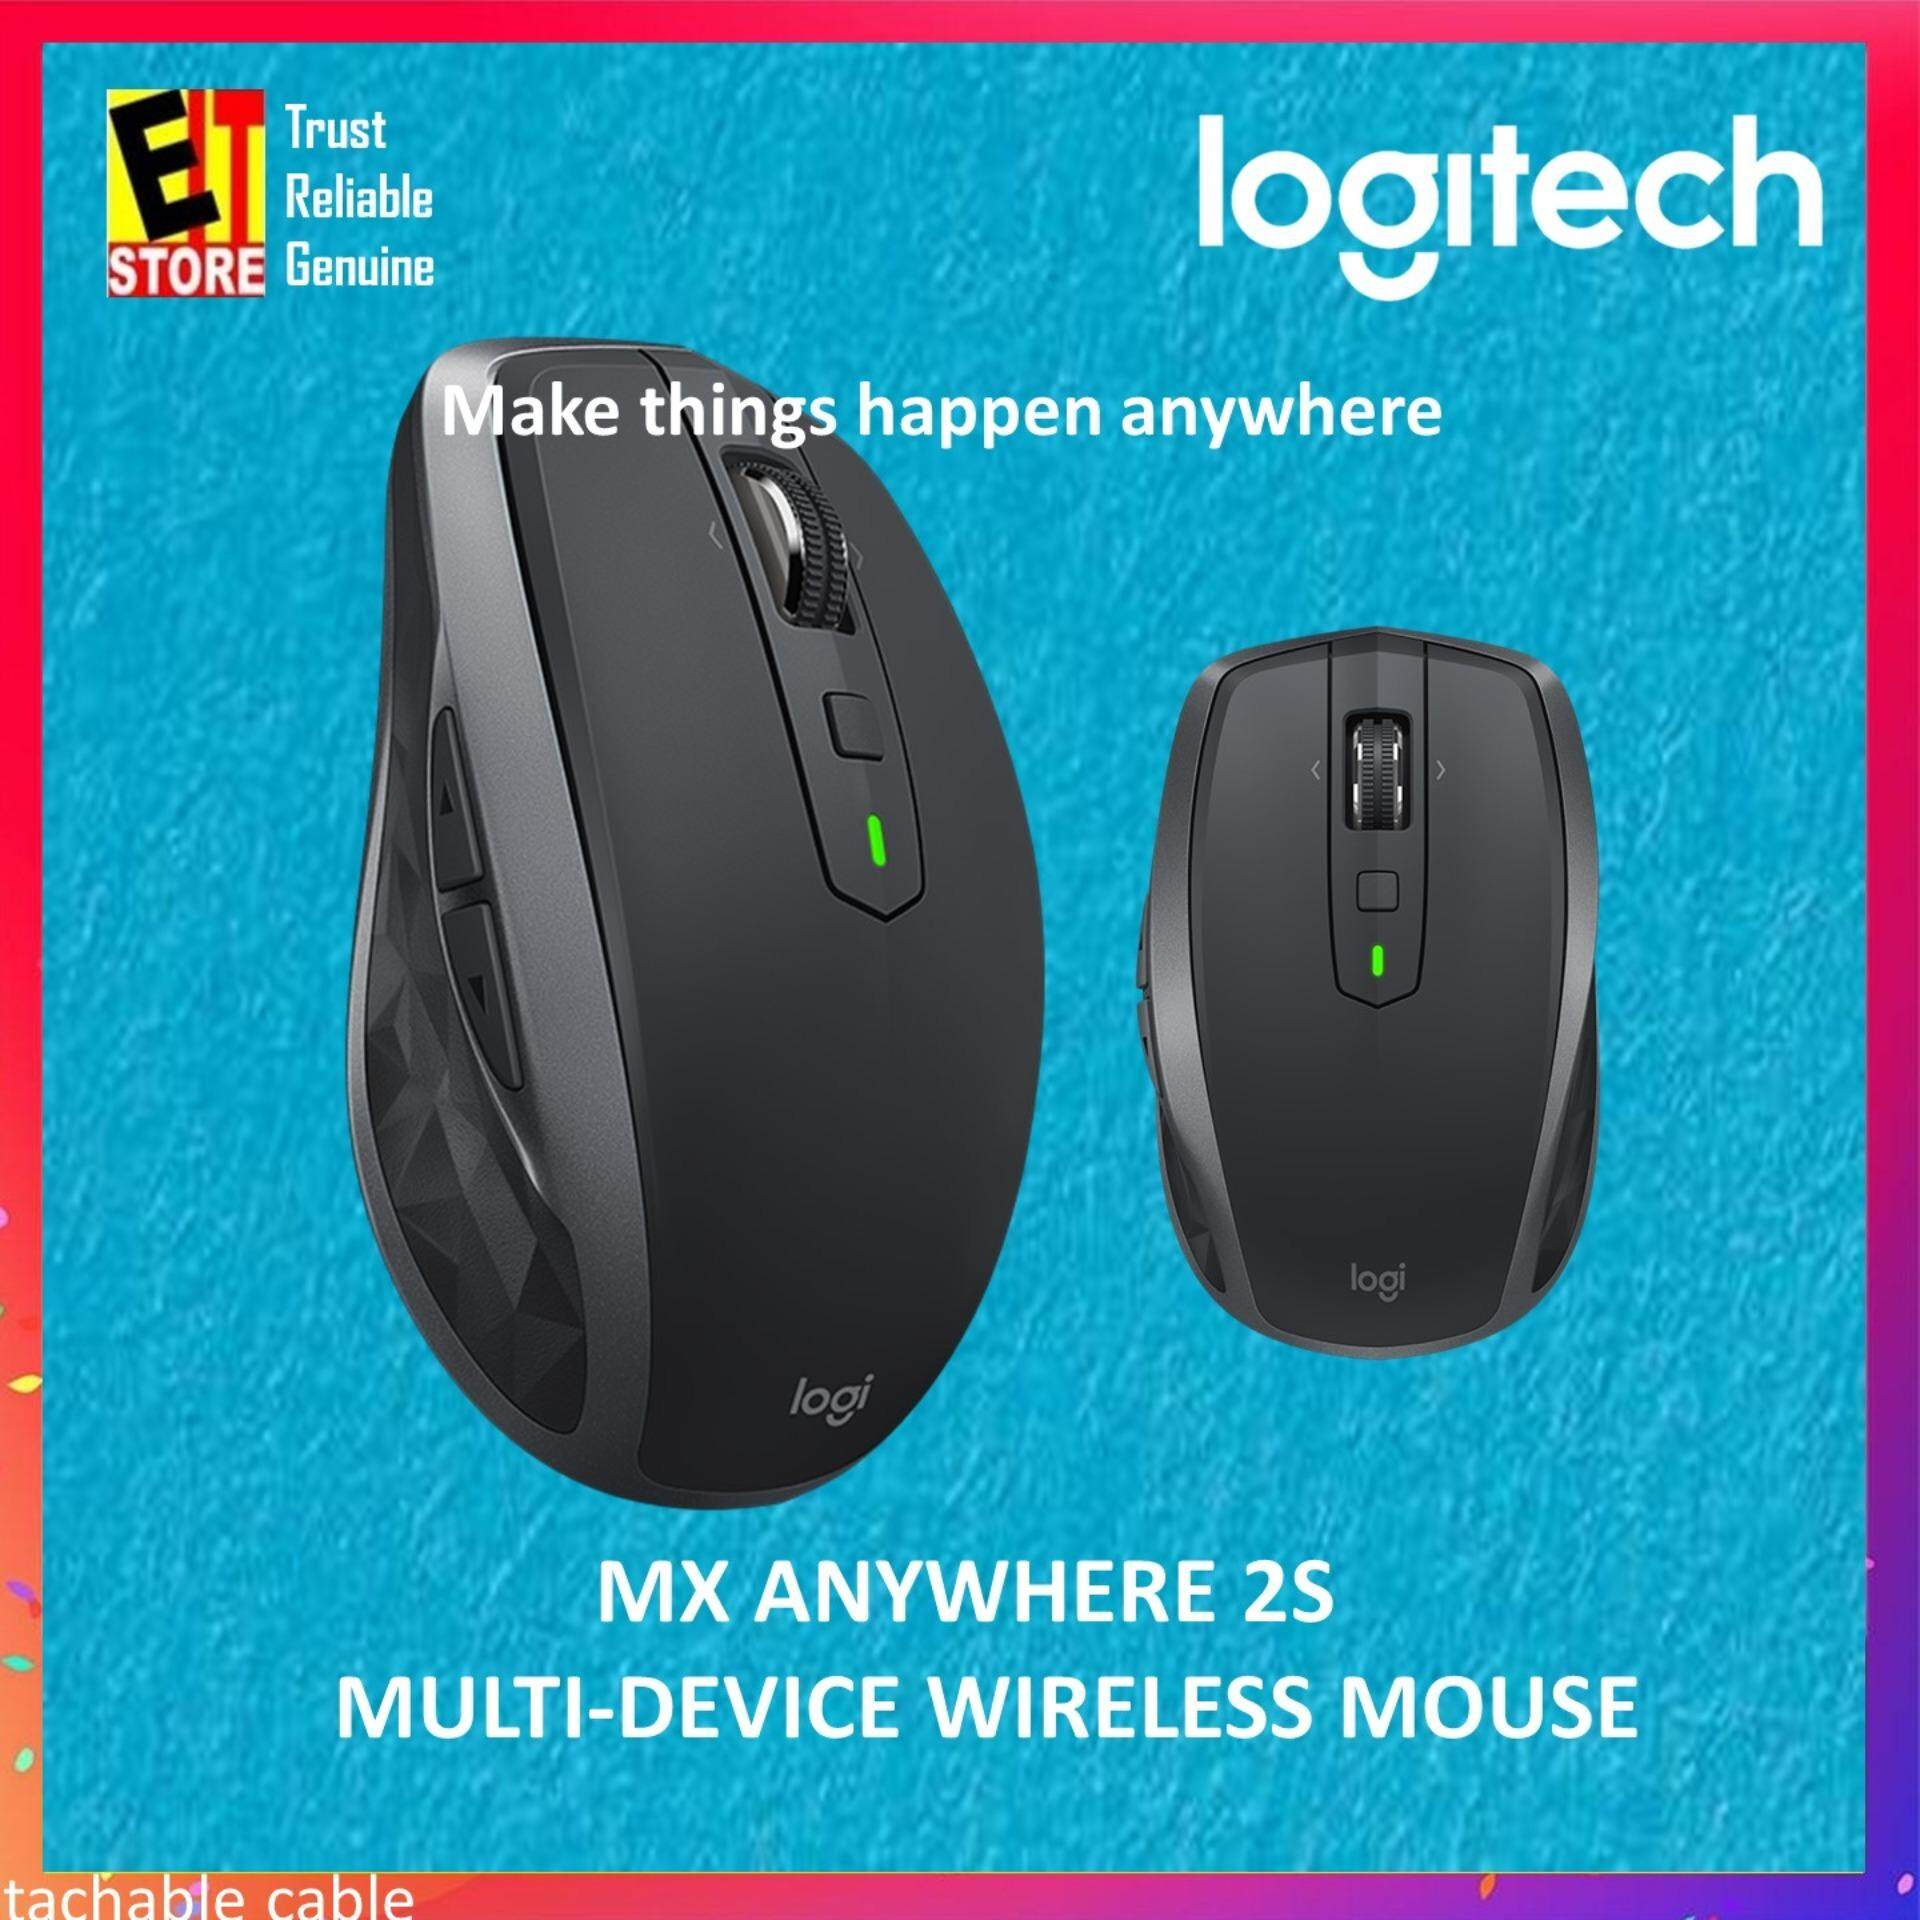 LOGITECH MX ANYWHERE 2S WIRELESS MOBILE MOUSE (910-005156)